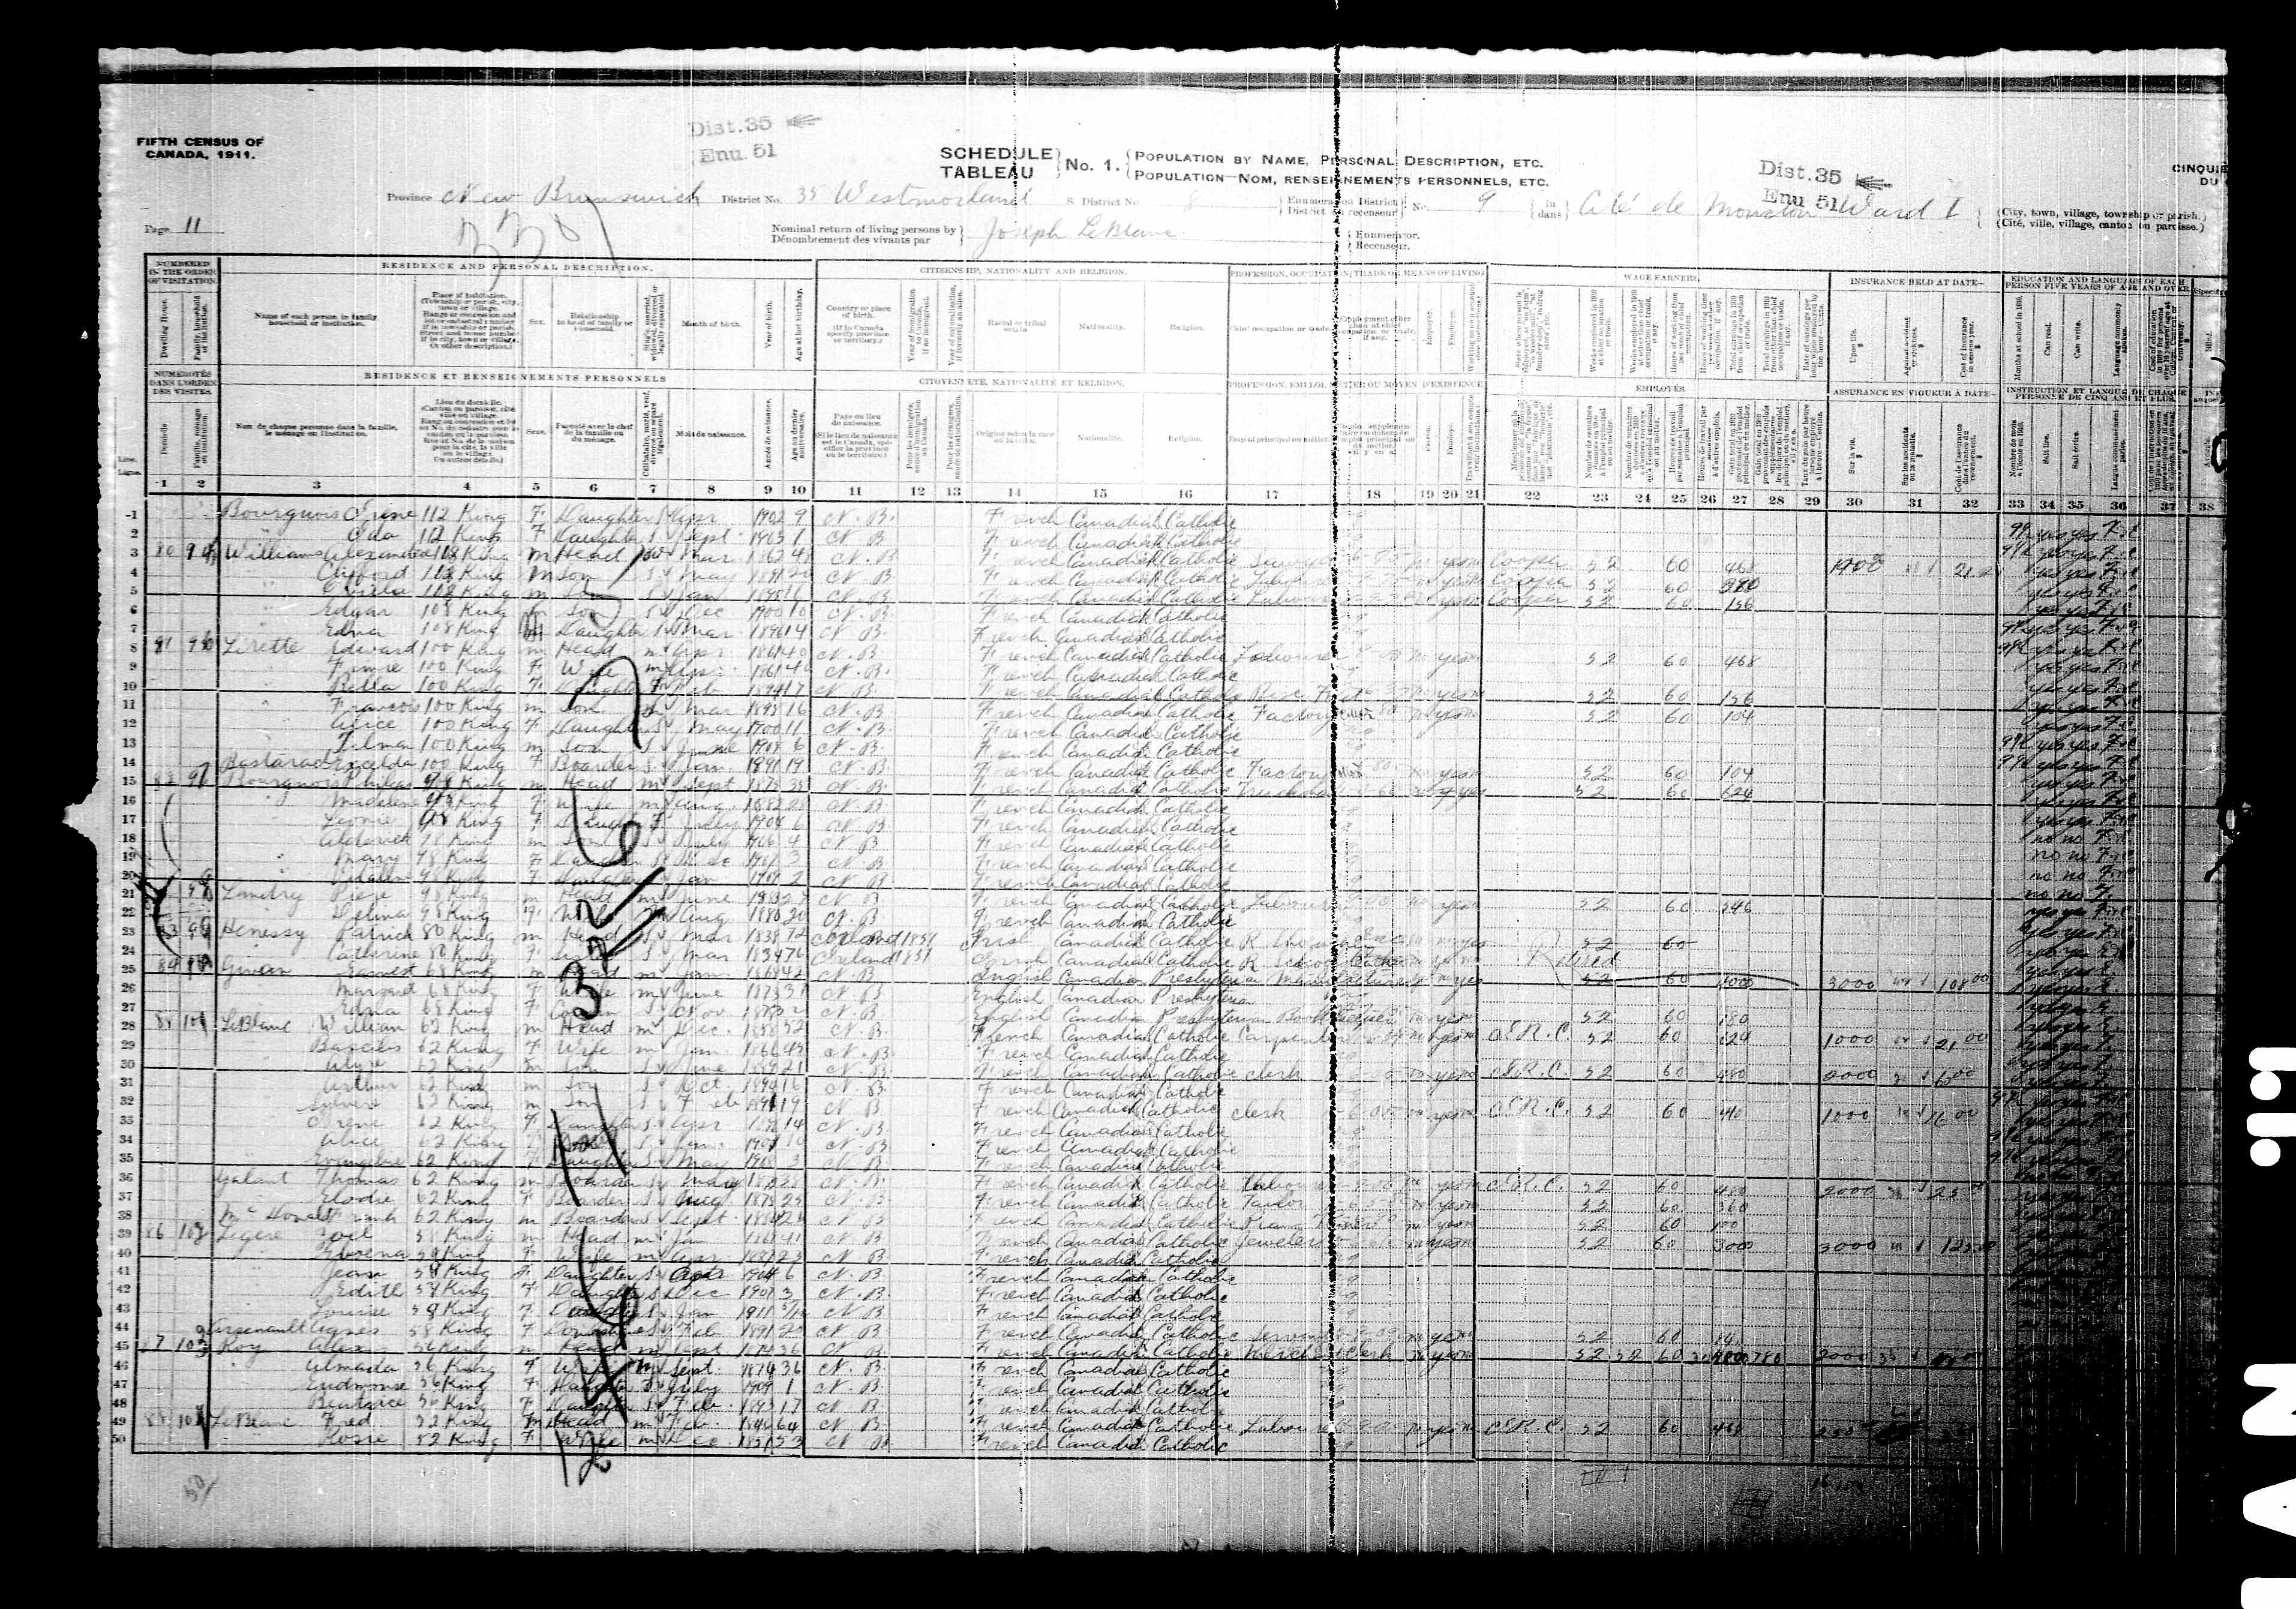 Digitized page of Census of Canada, 1911, Page number 11, for Zoel Legere